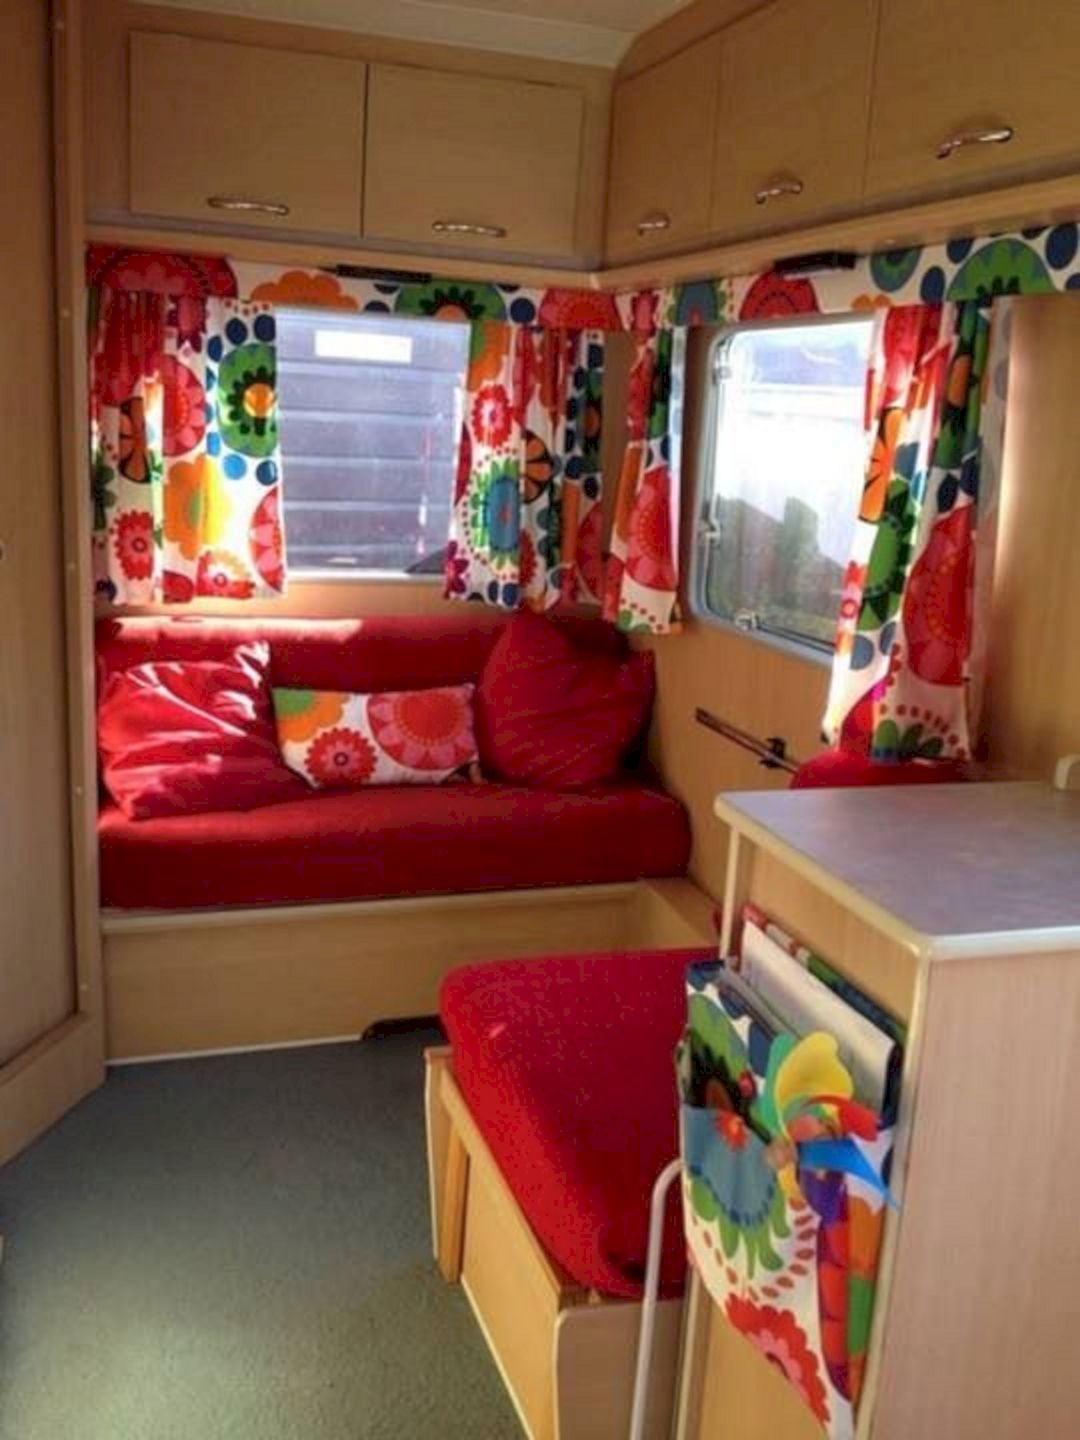 Flawless 40 Awesome Rv Curtain Design For Amazing Camper Interior Ideas Https Usdecorating Com 788 40 Awesome Rv Cur Interior Decor Home Decor Caravan Decor